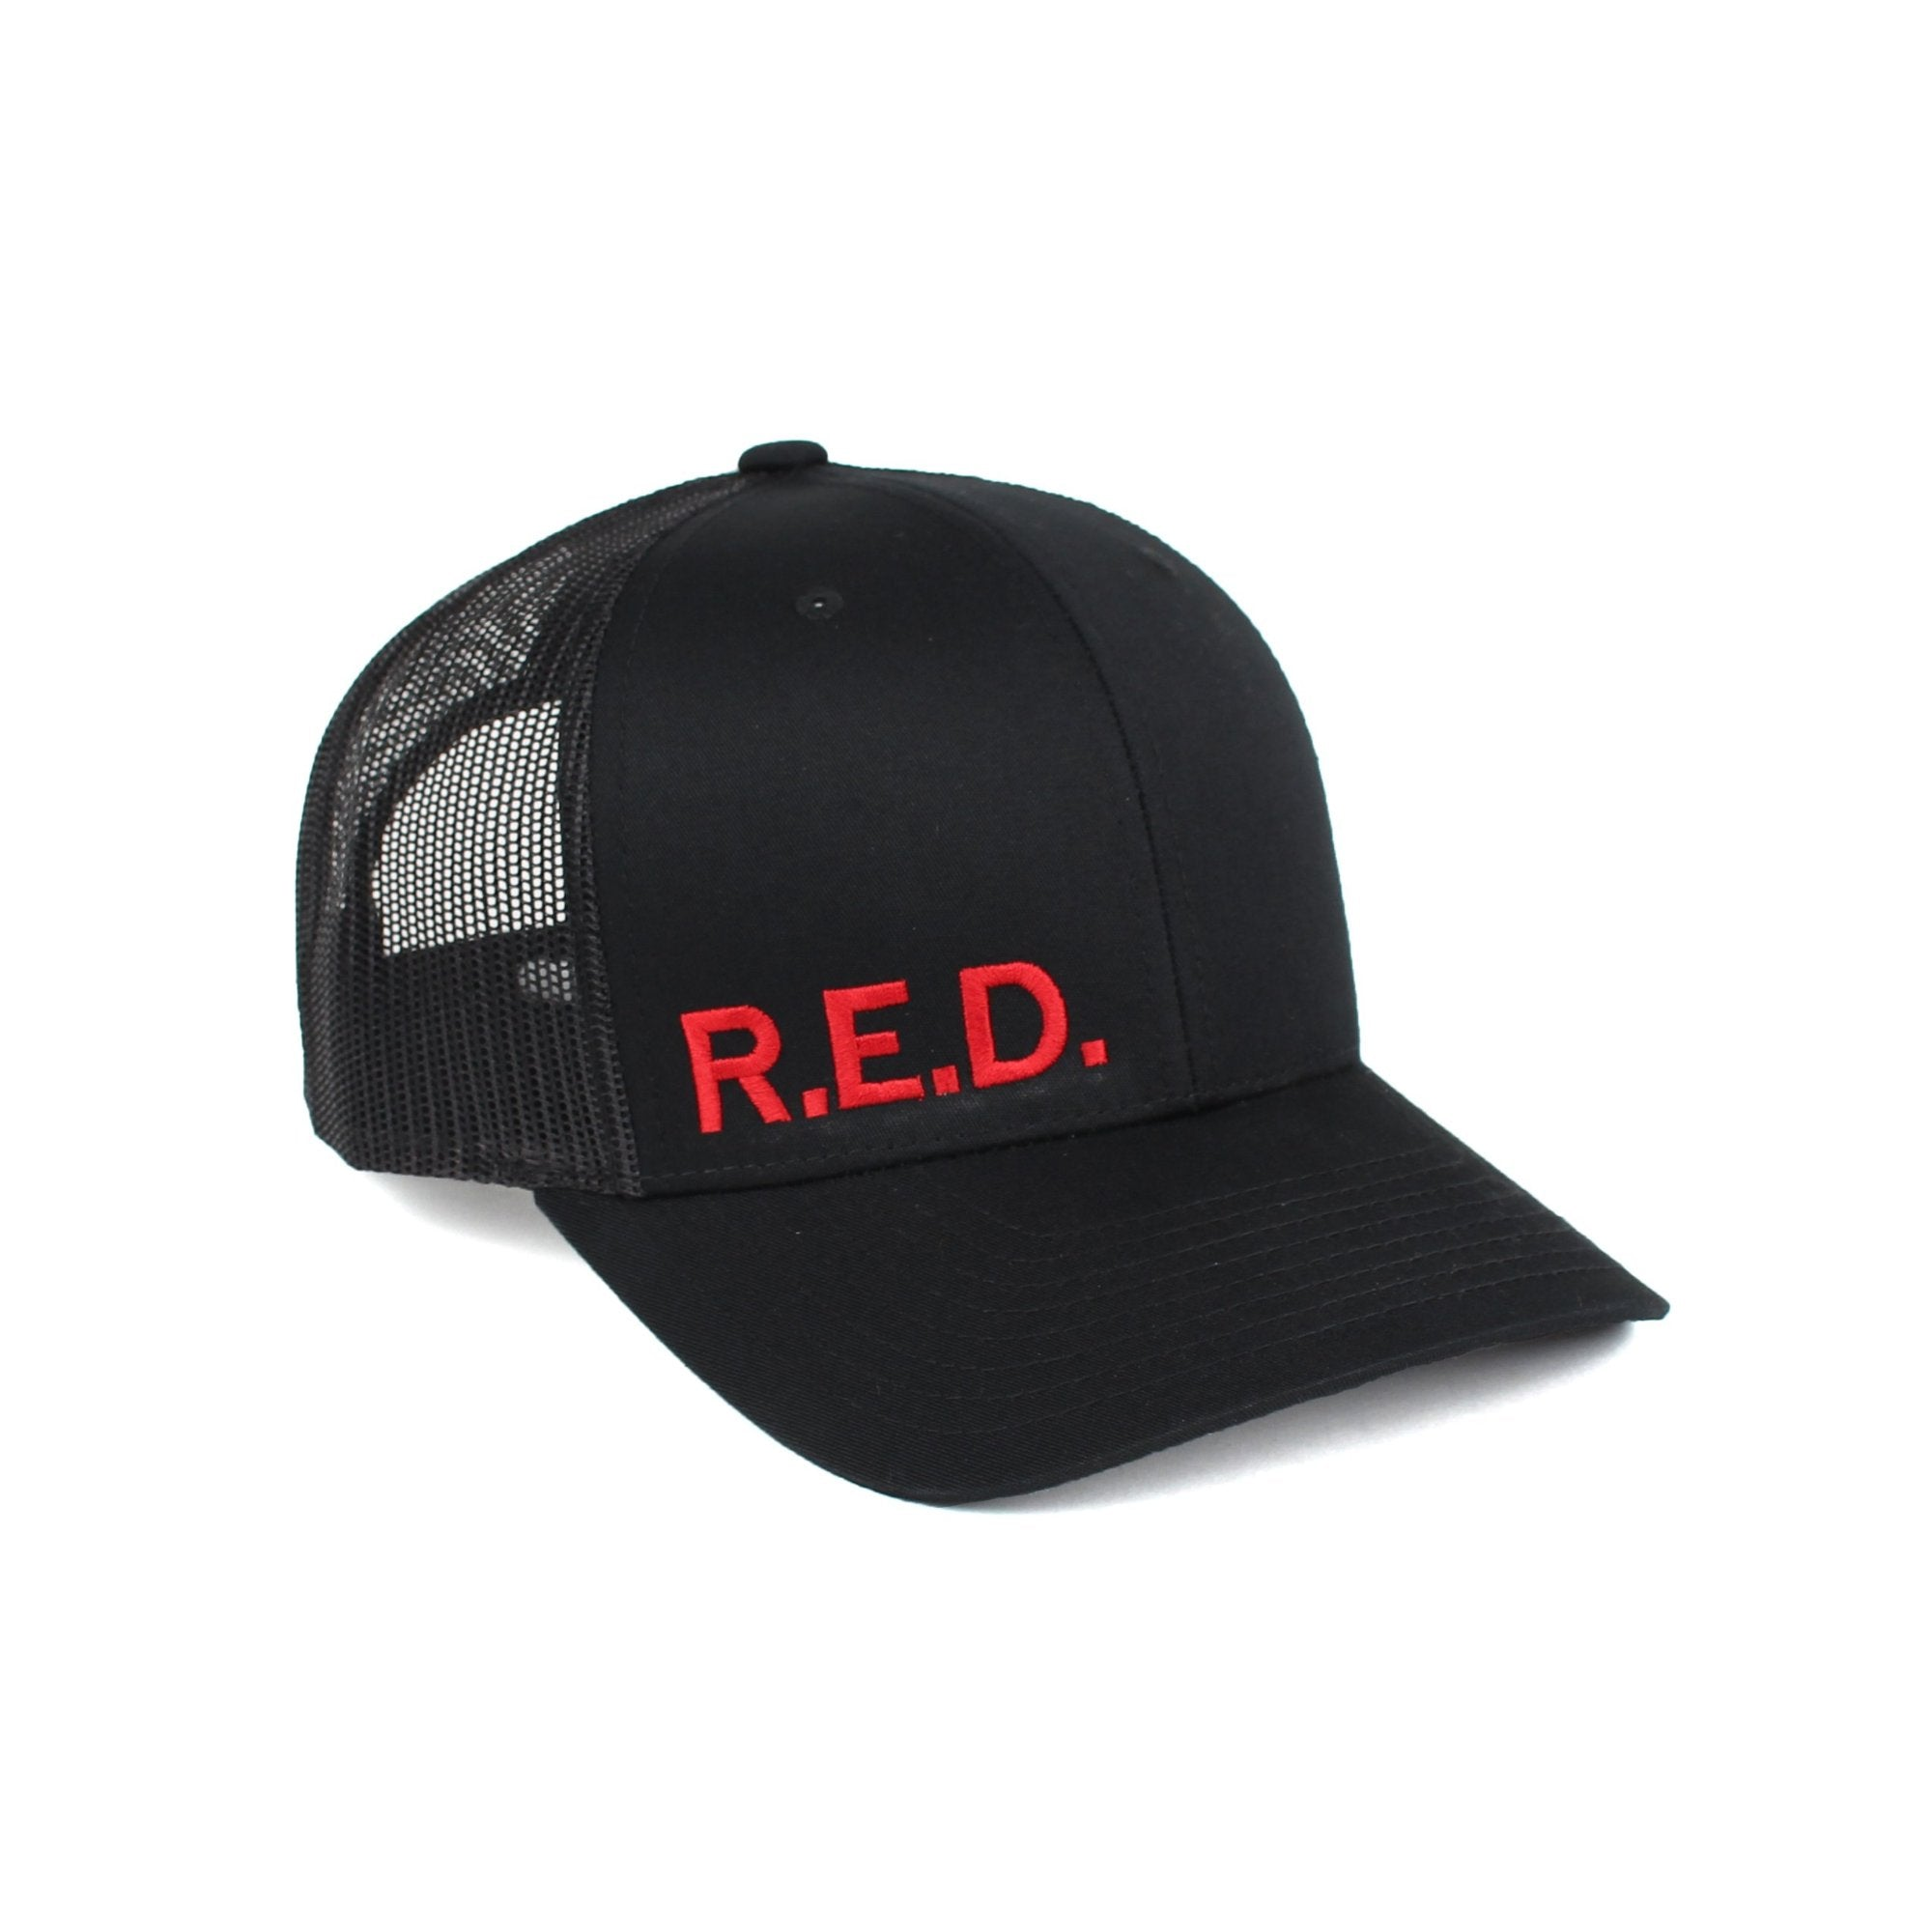 R.E.D. Trucker - Black/Red - Hats - Pipe Hitters Union